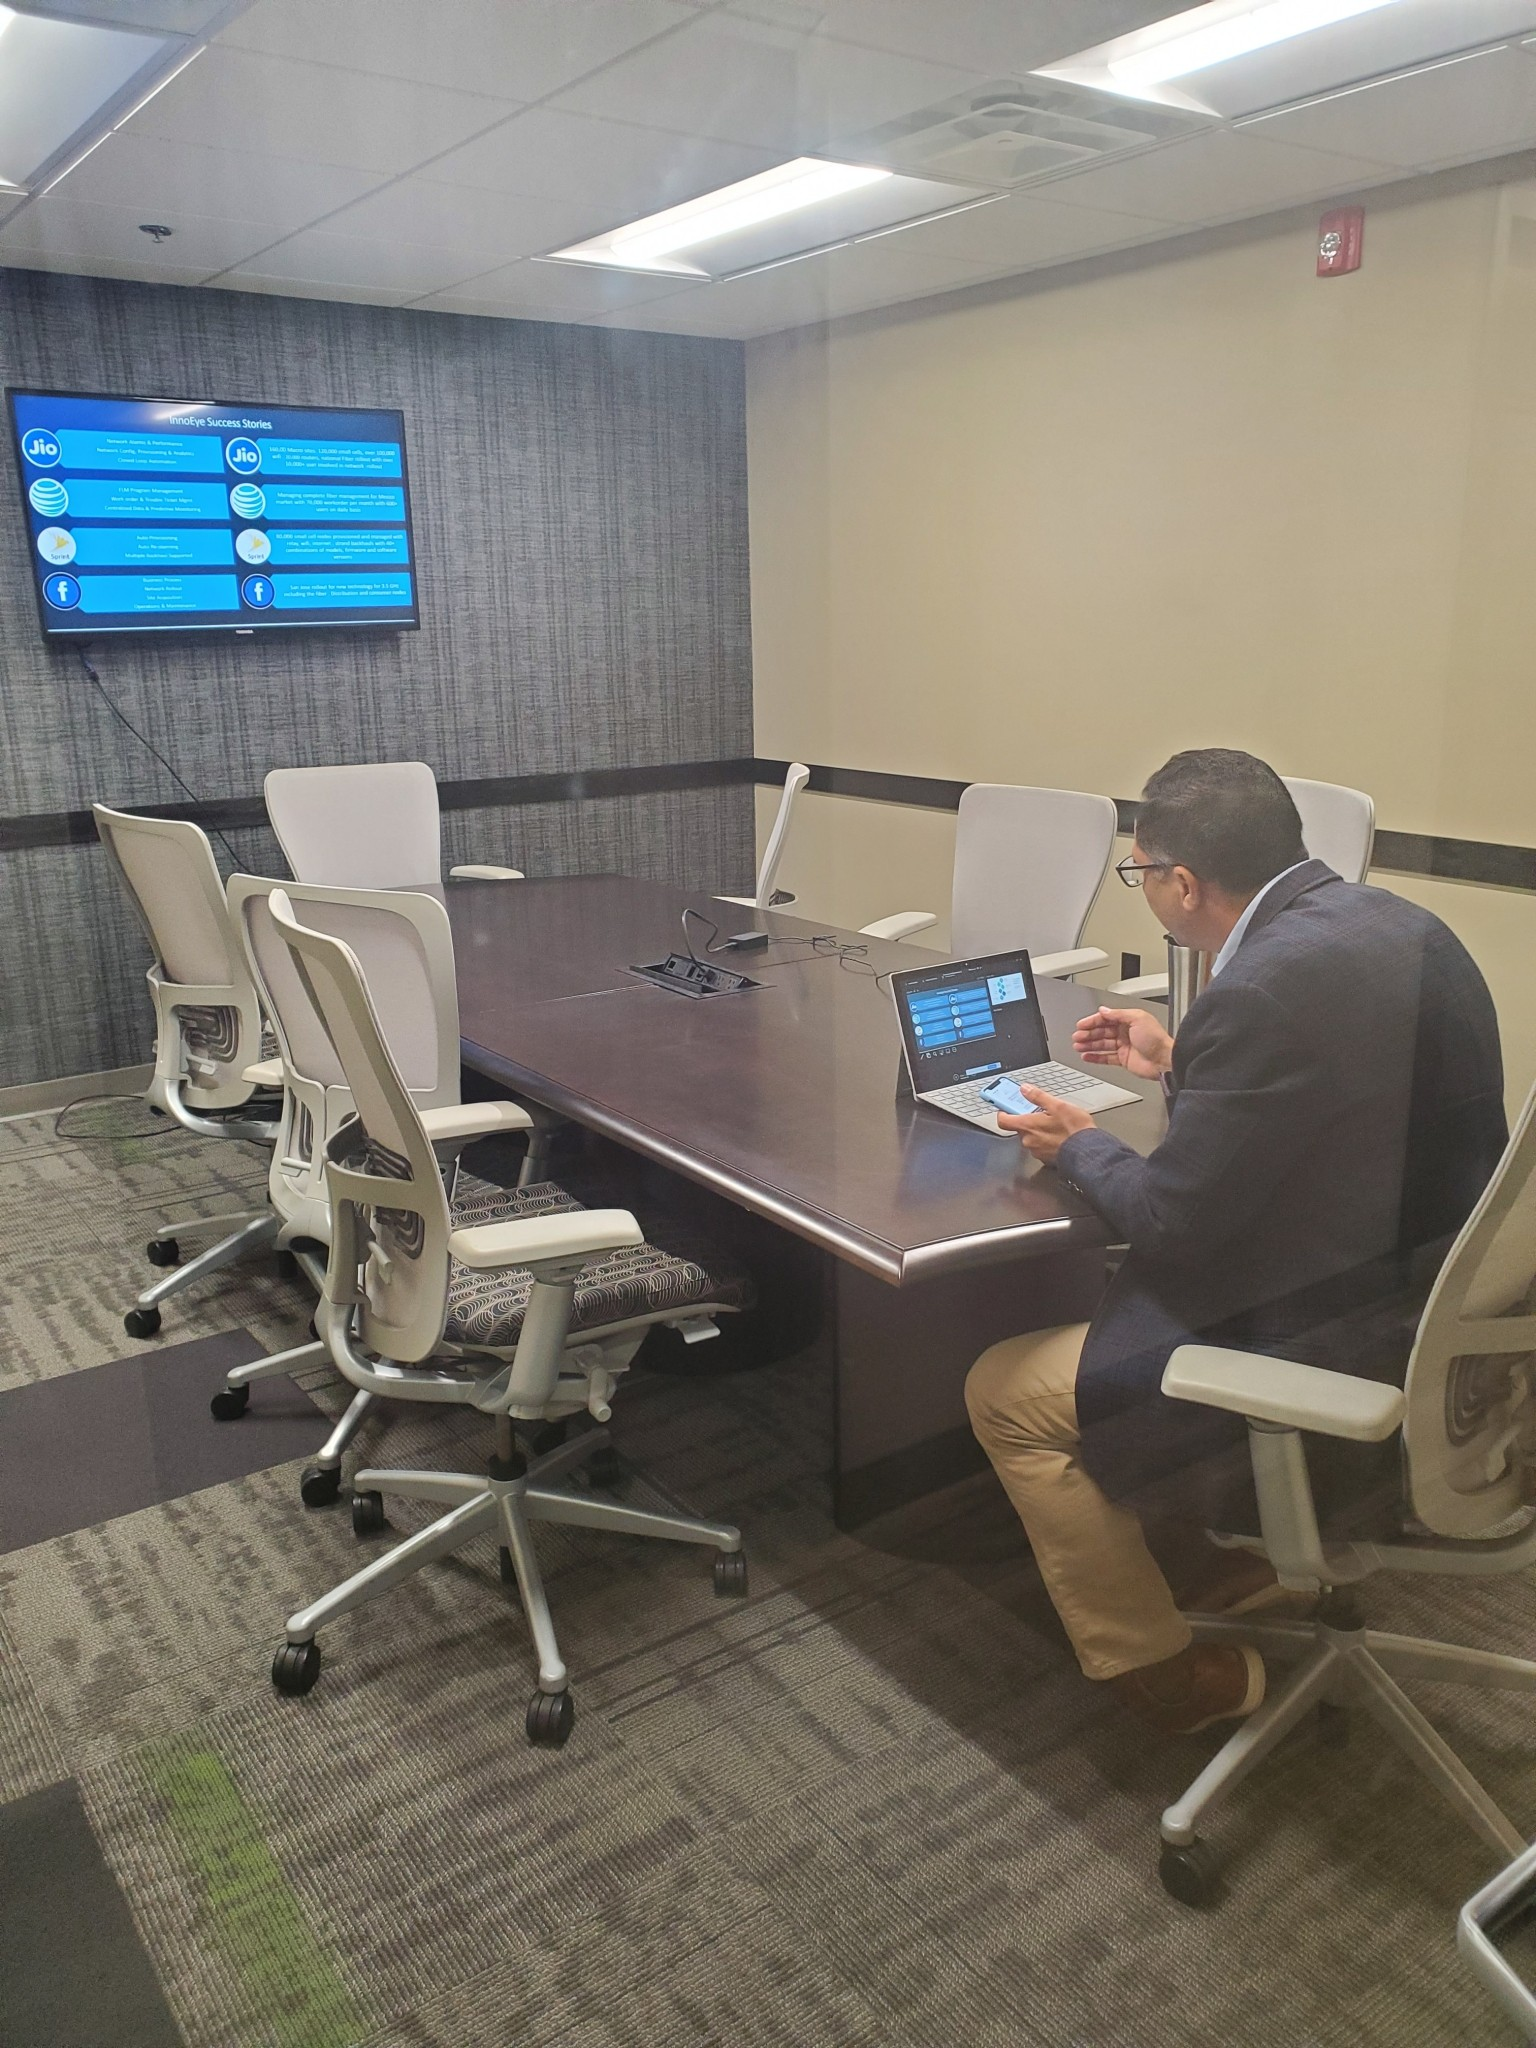 Productivity thrives in coworking space